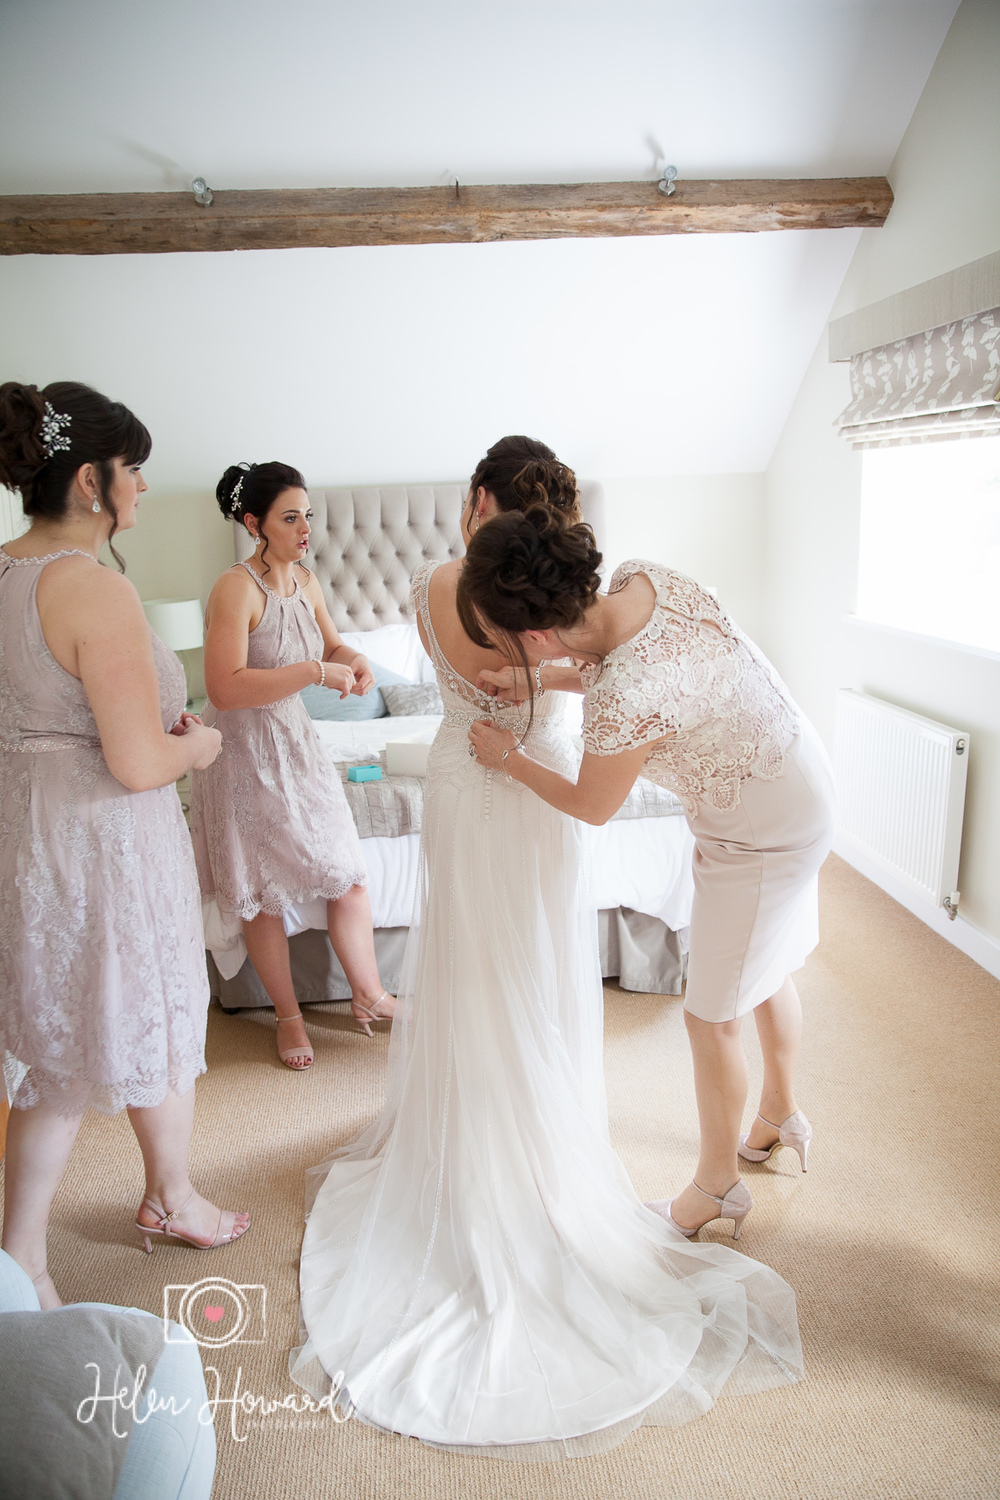 Helen Howard Photography Packington Moor Wedding-41.jpg